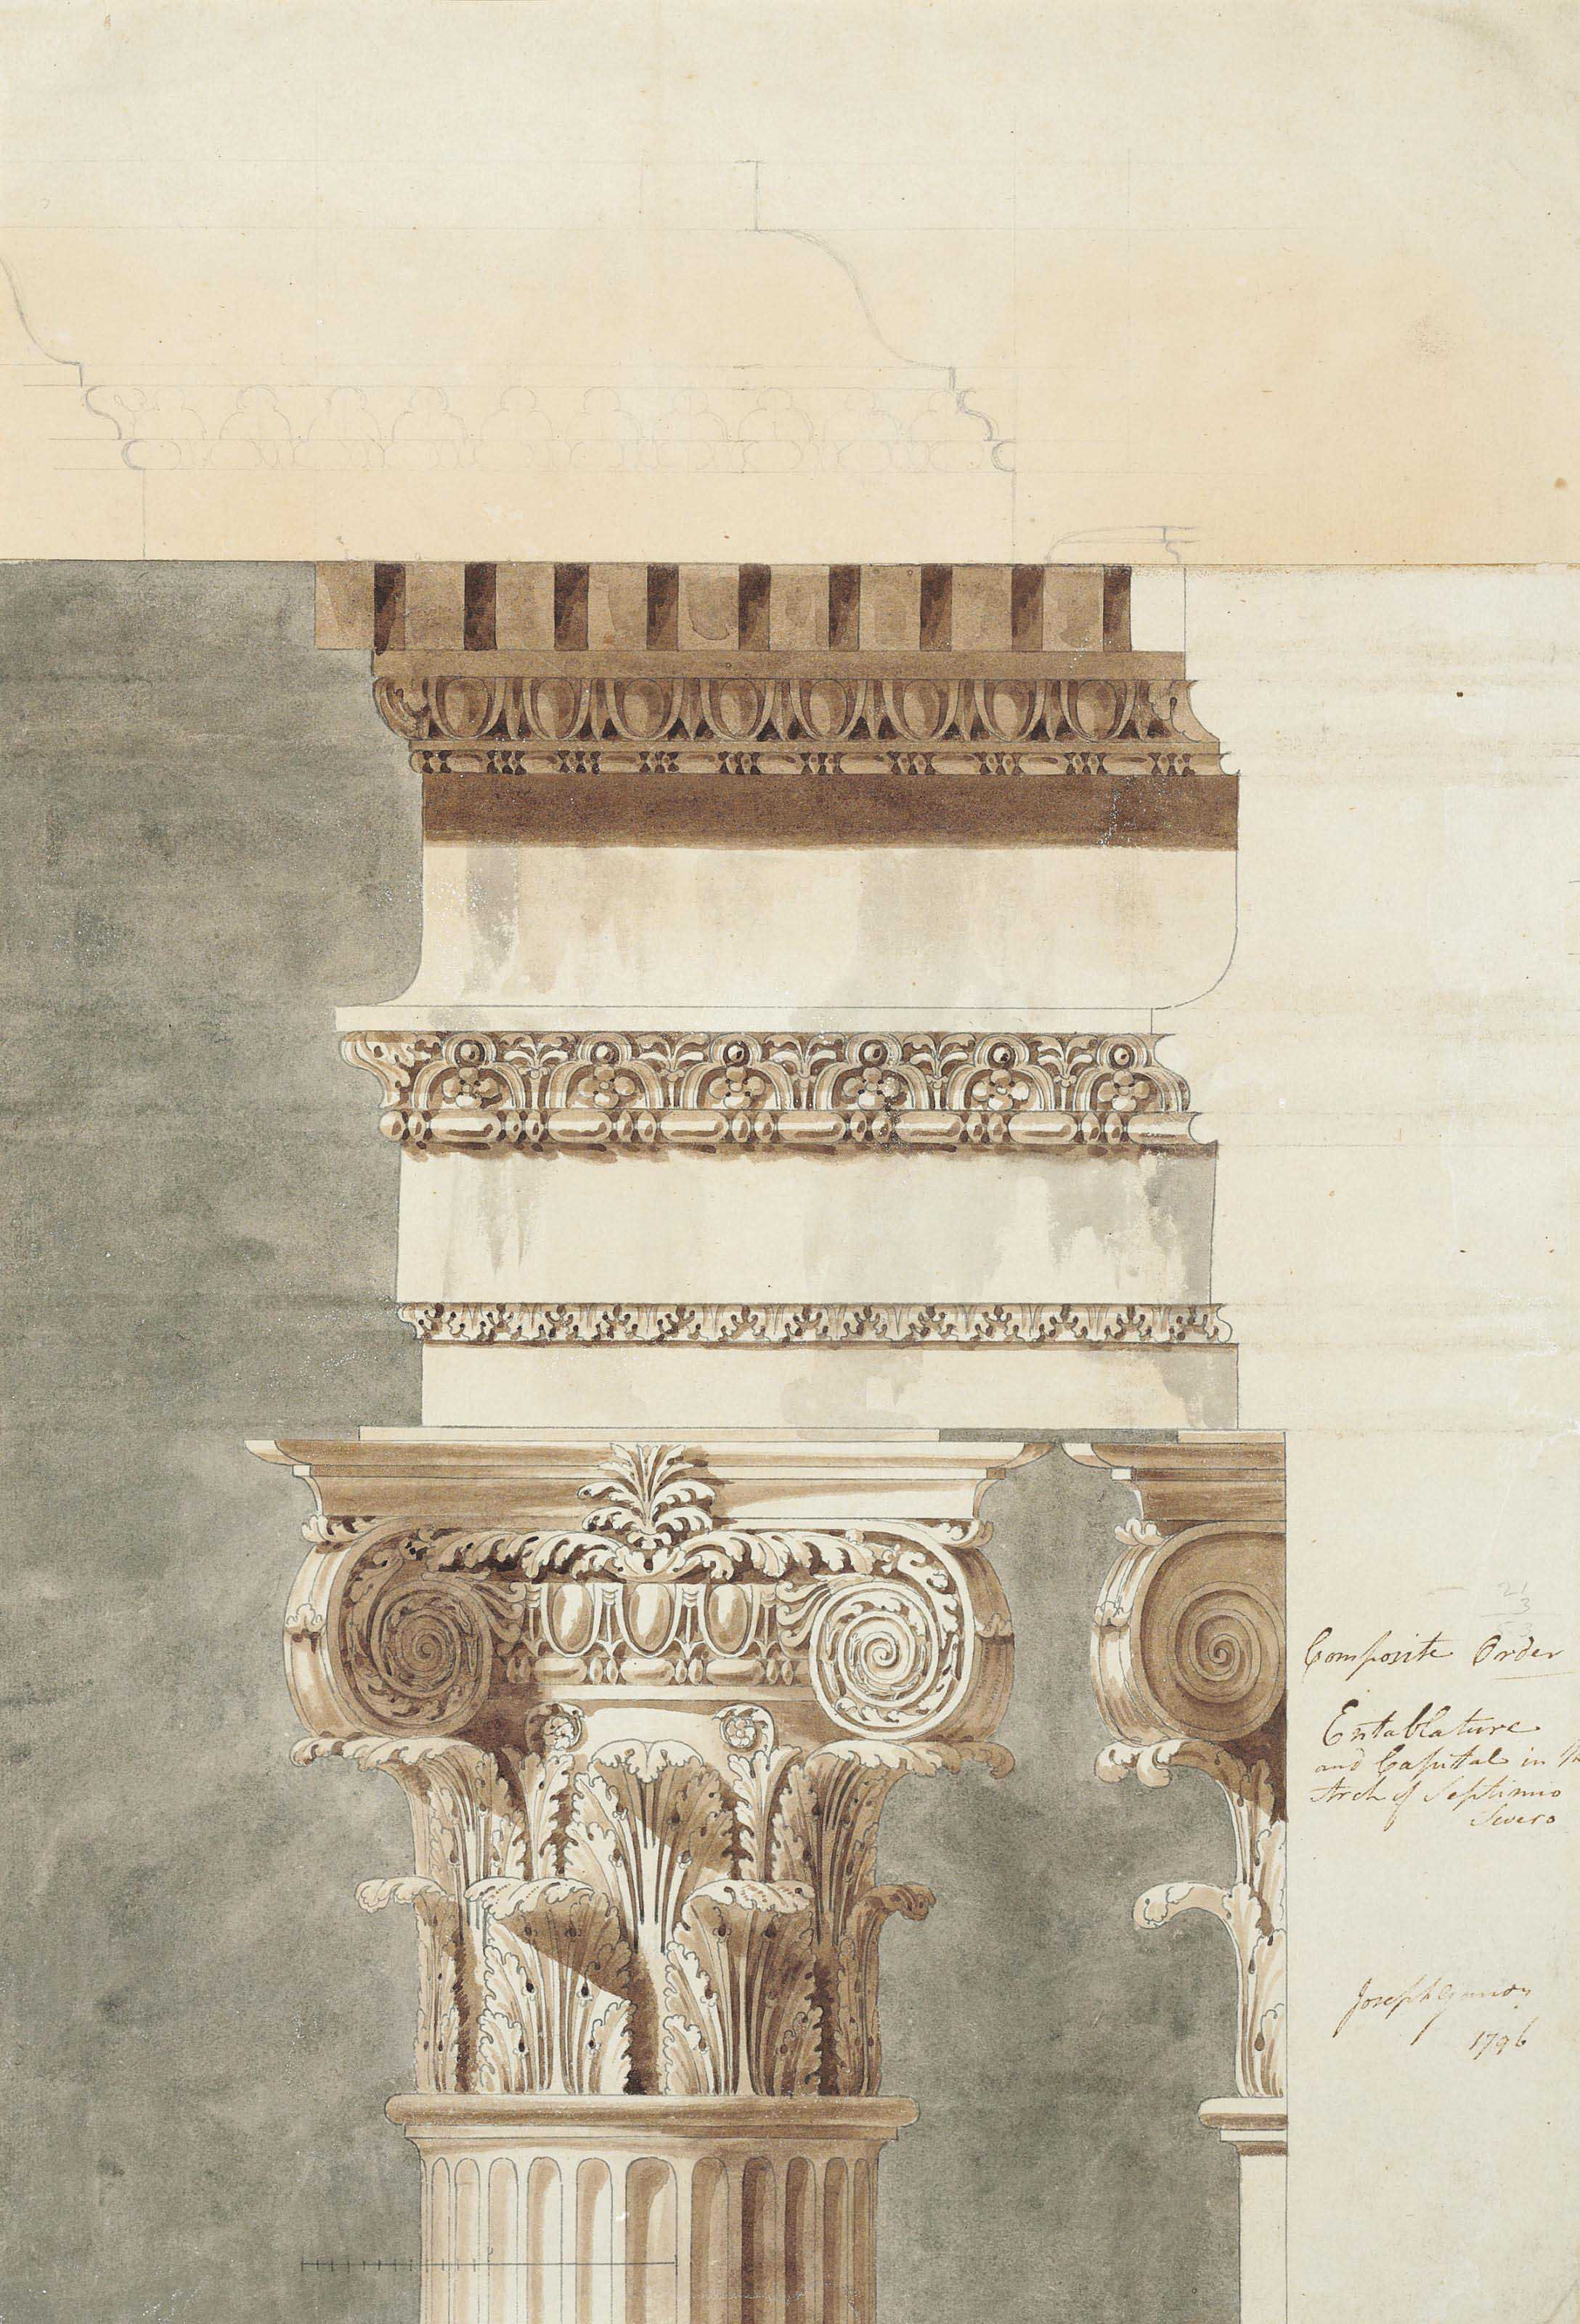 Entablature and capital in the Arch of Septimius Severus